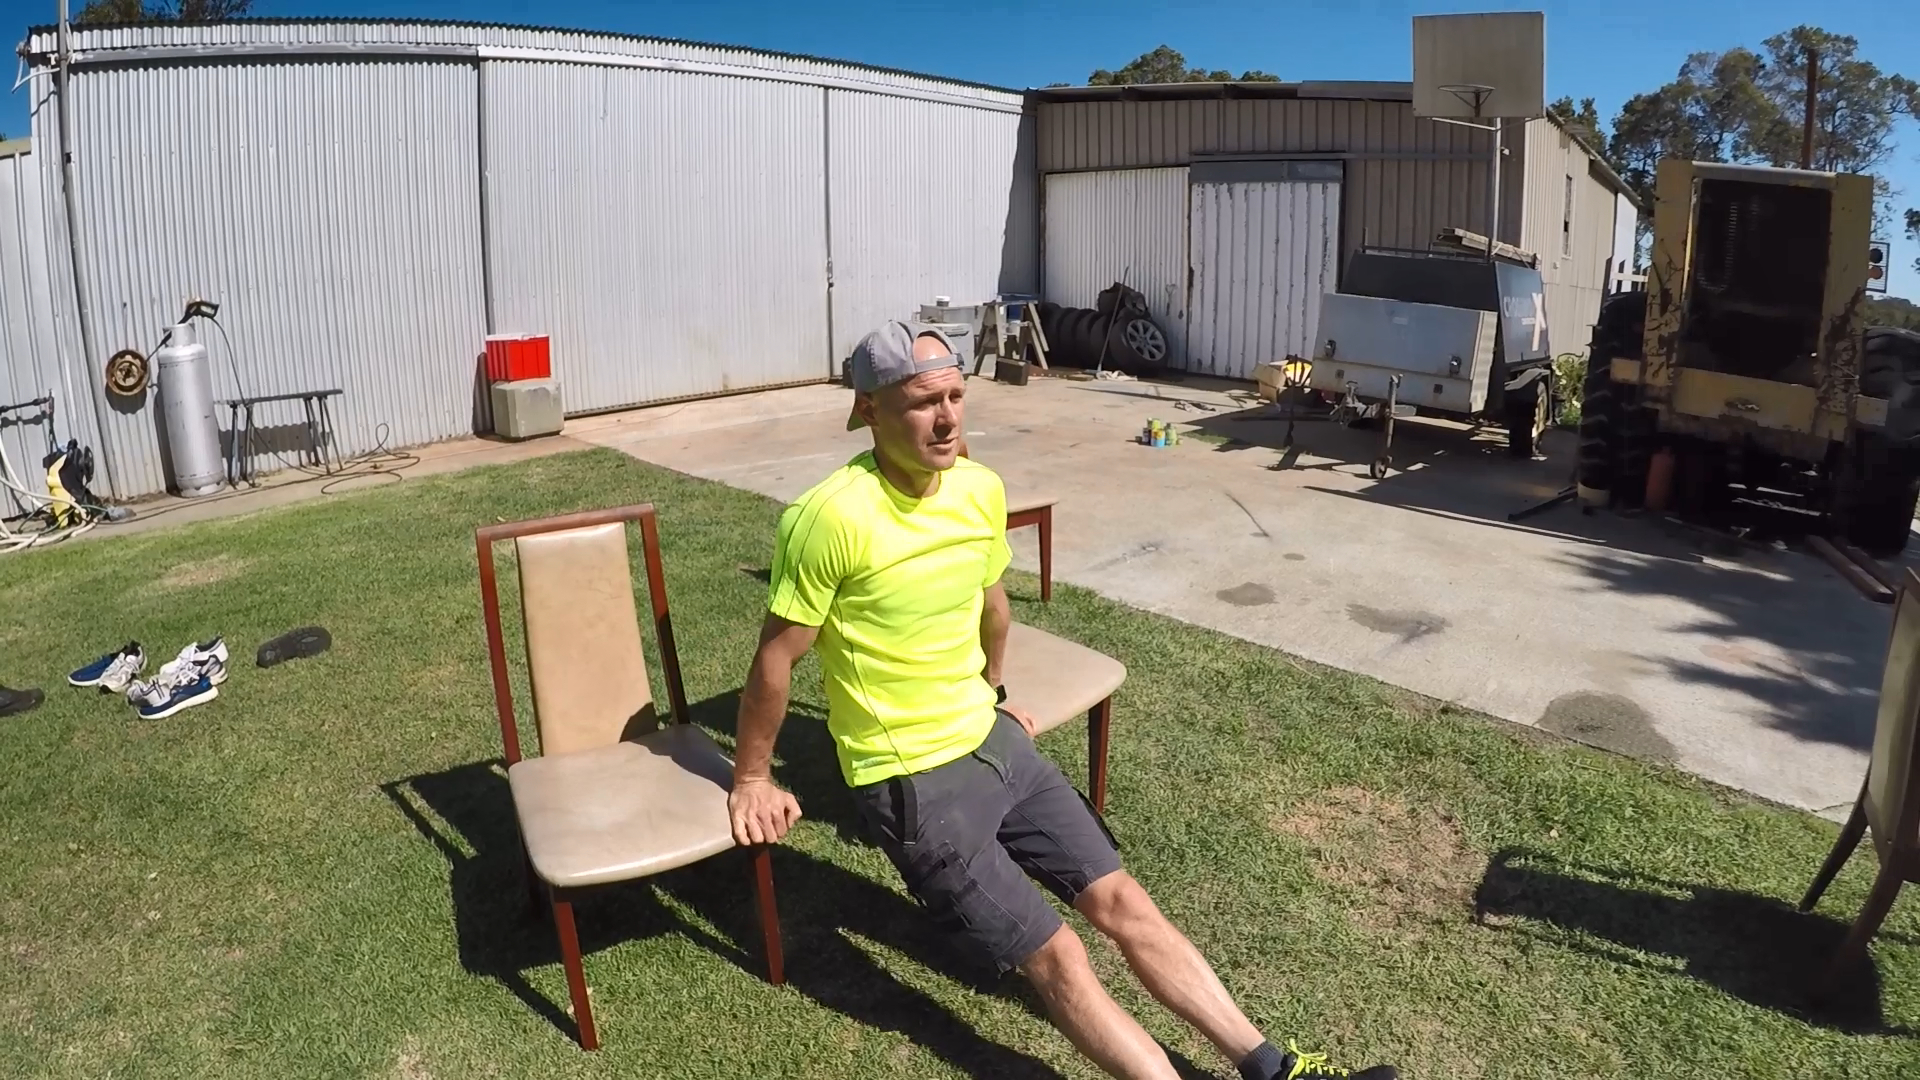 Sam Goodall's backyard workout routine: Course 2